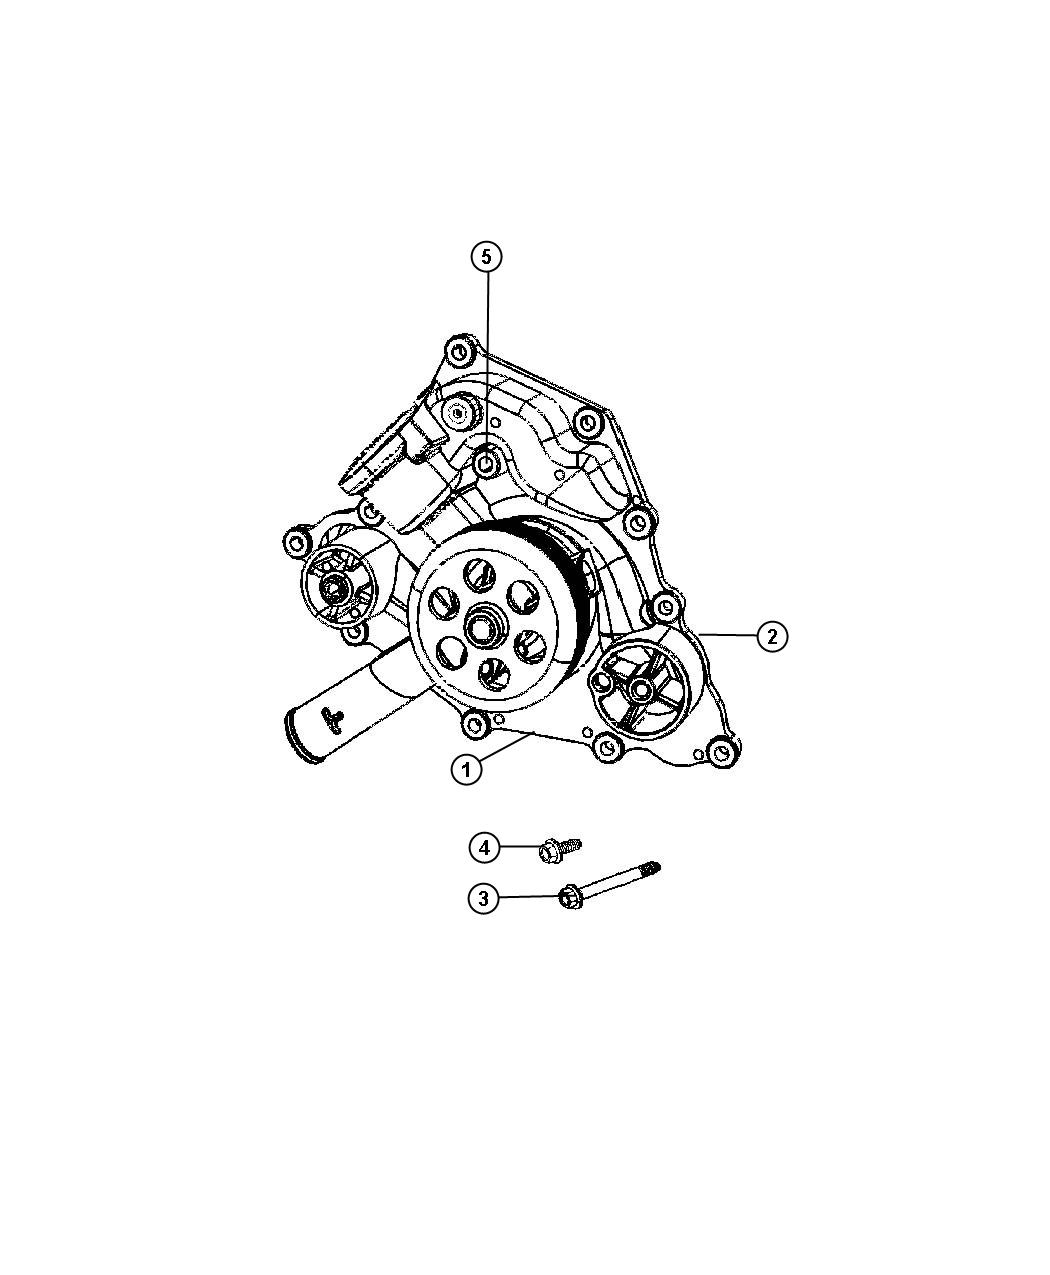 Jeep Commander Used For Bolt And Coned Washer Used For